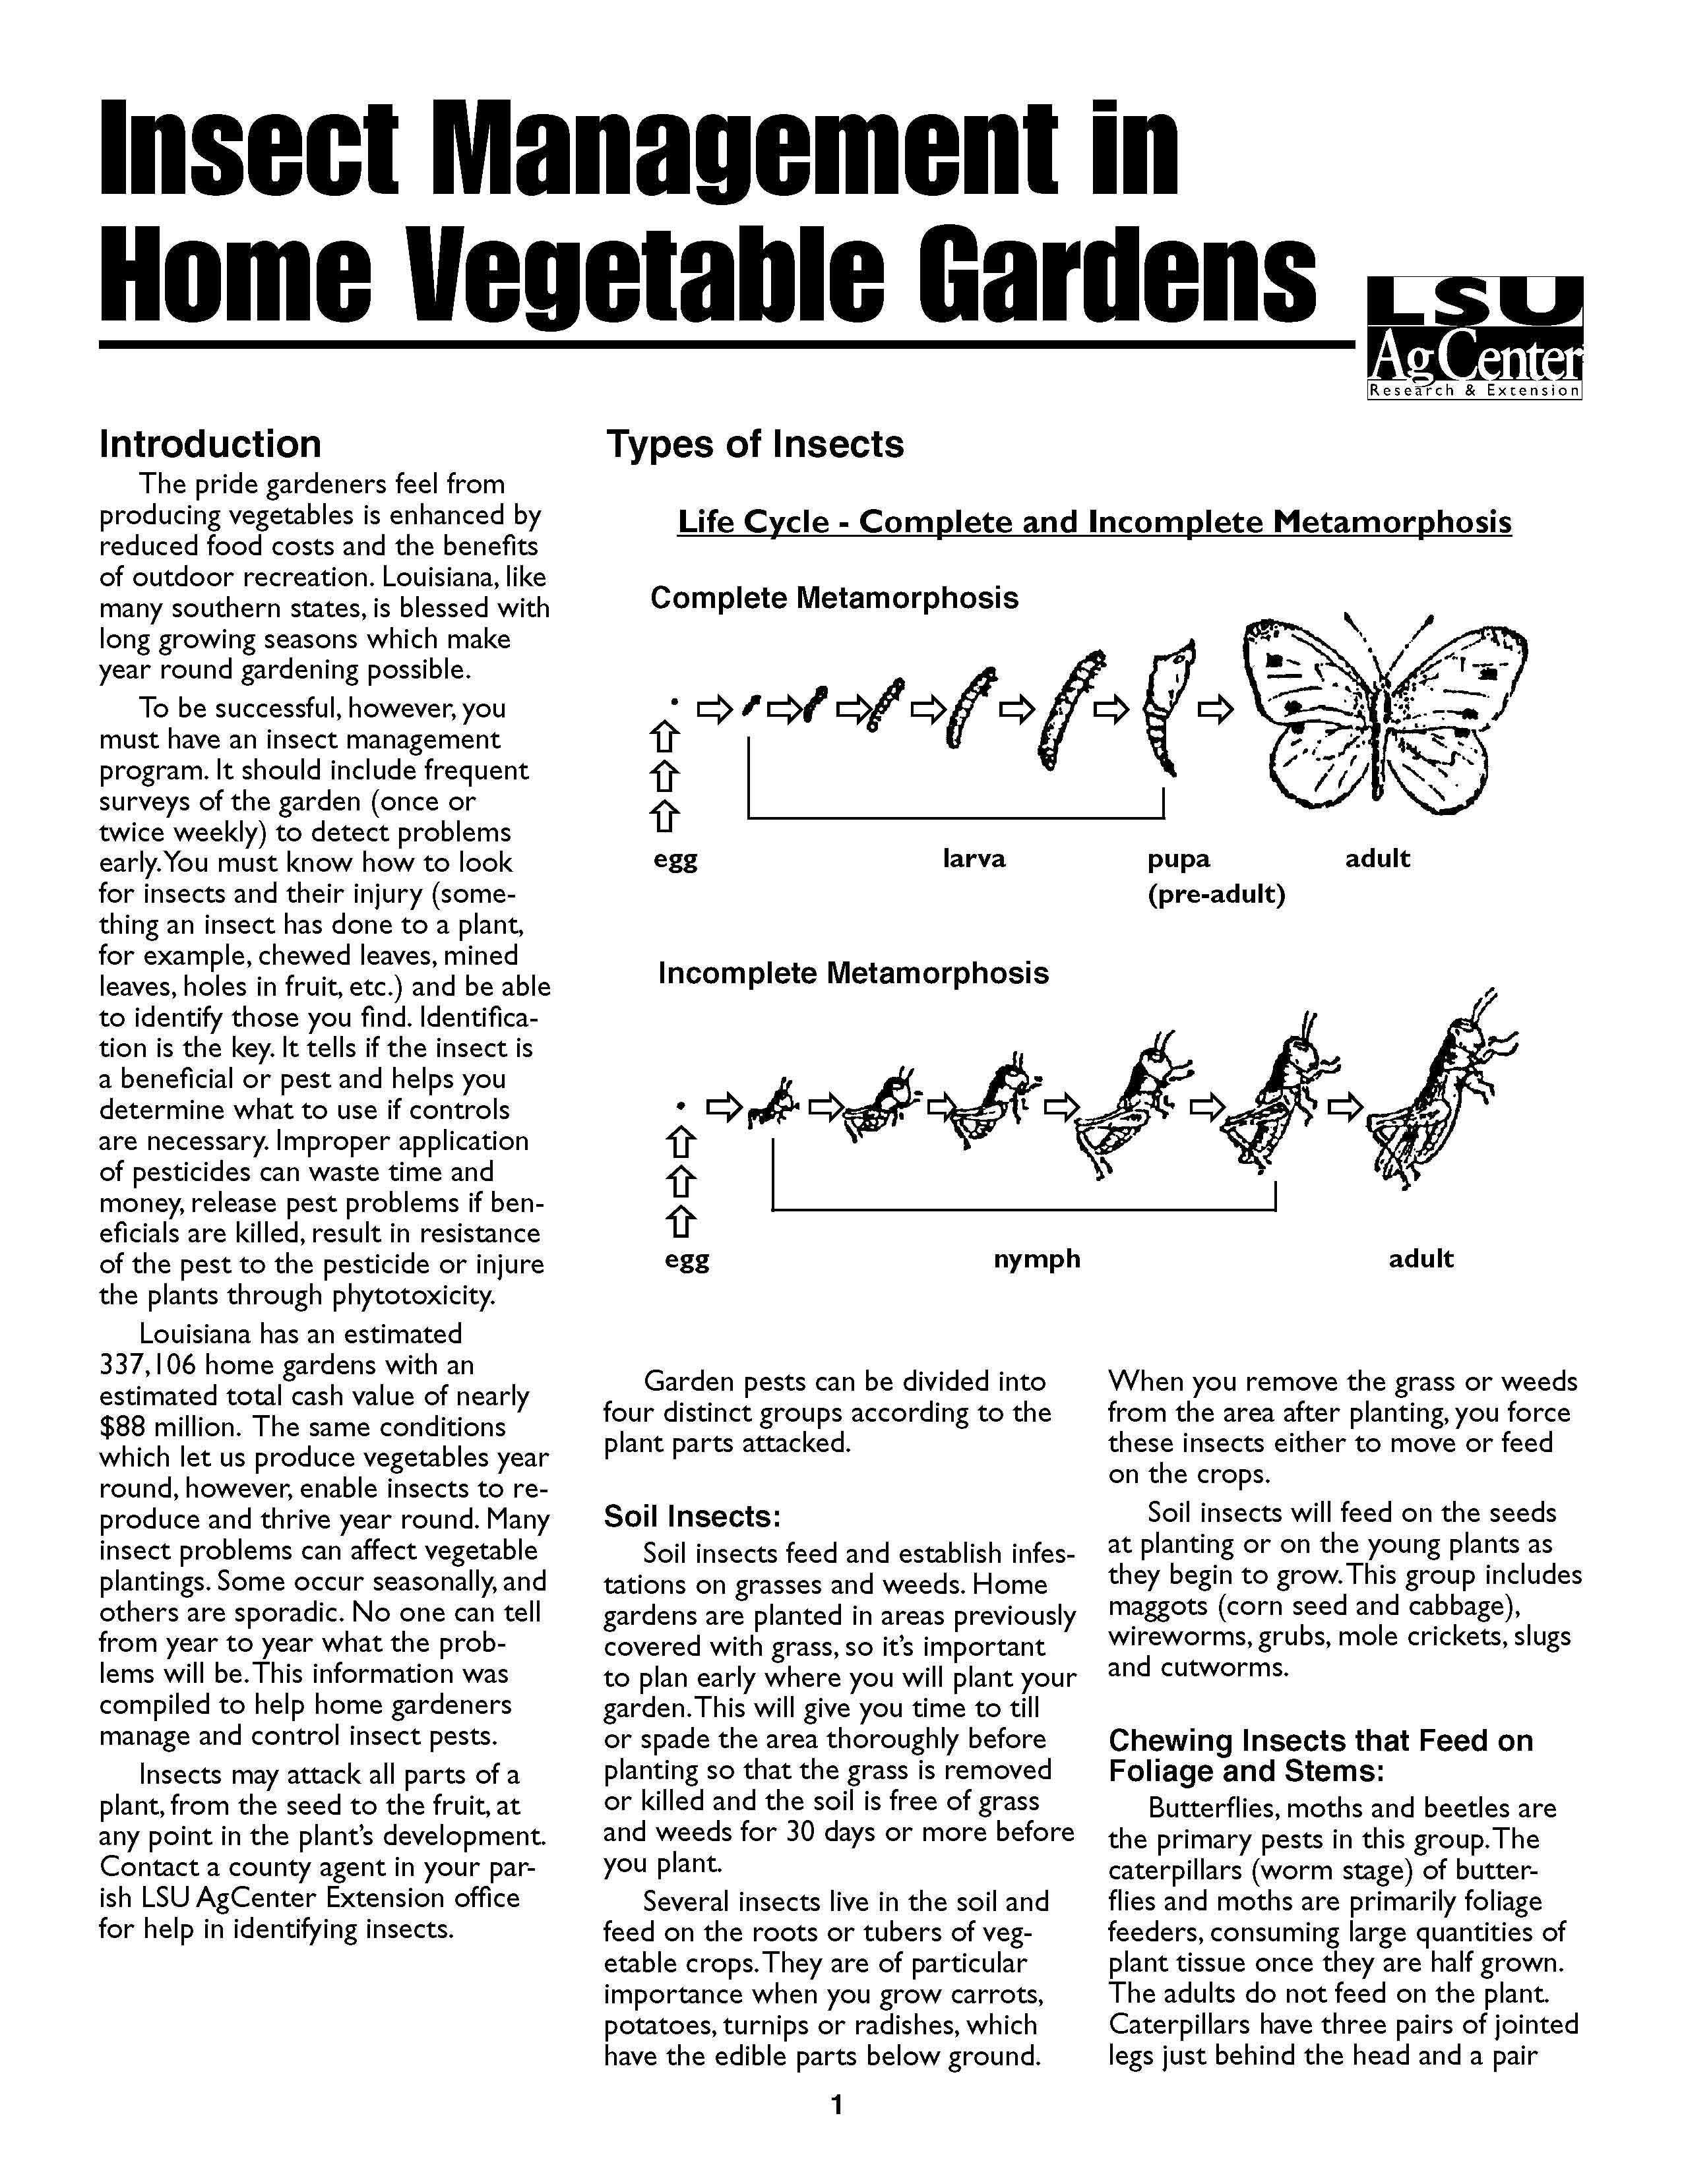 Insect Management in Home Vegetable Gardens